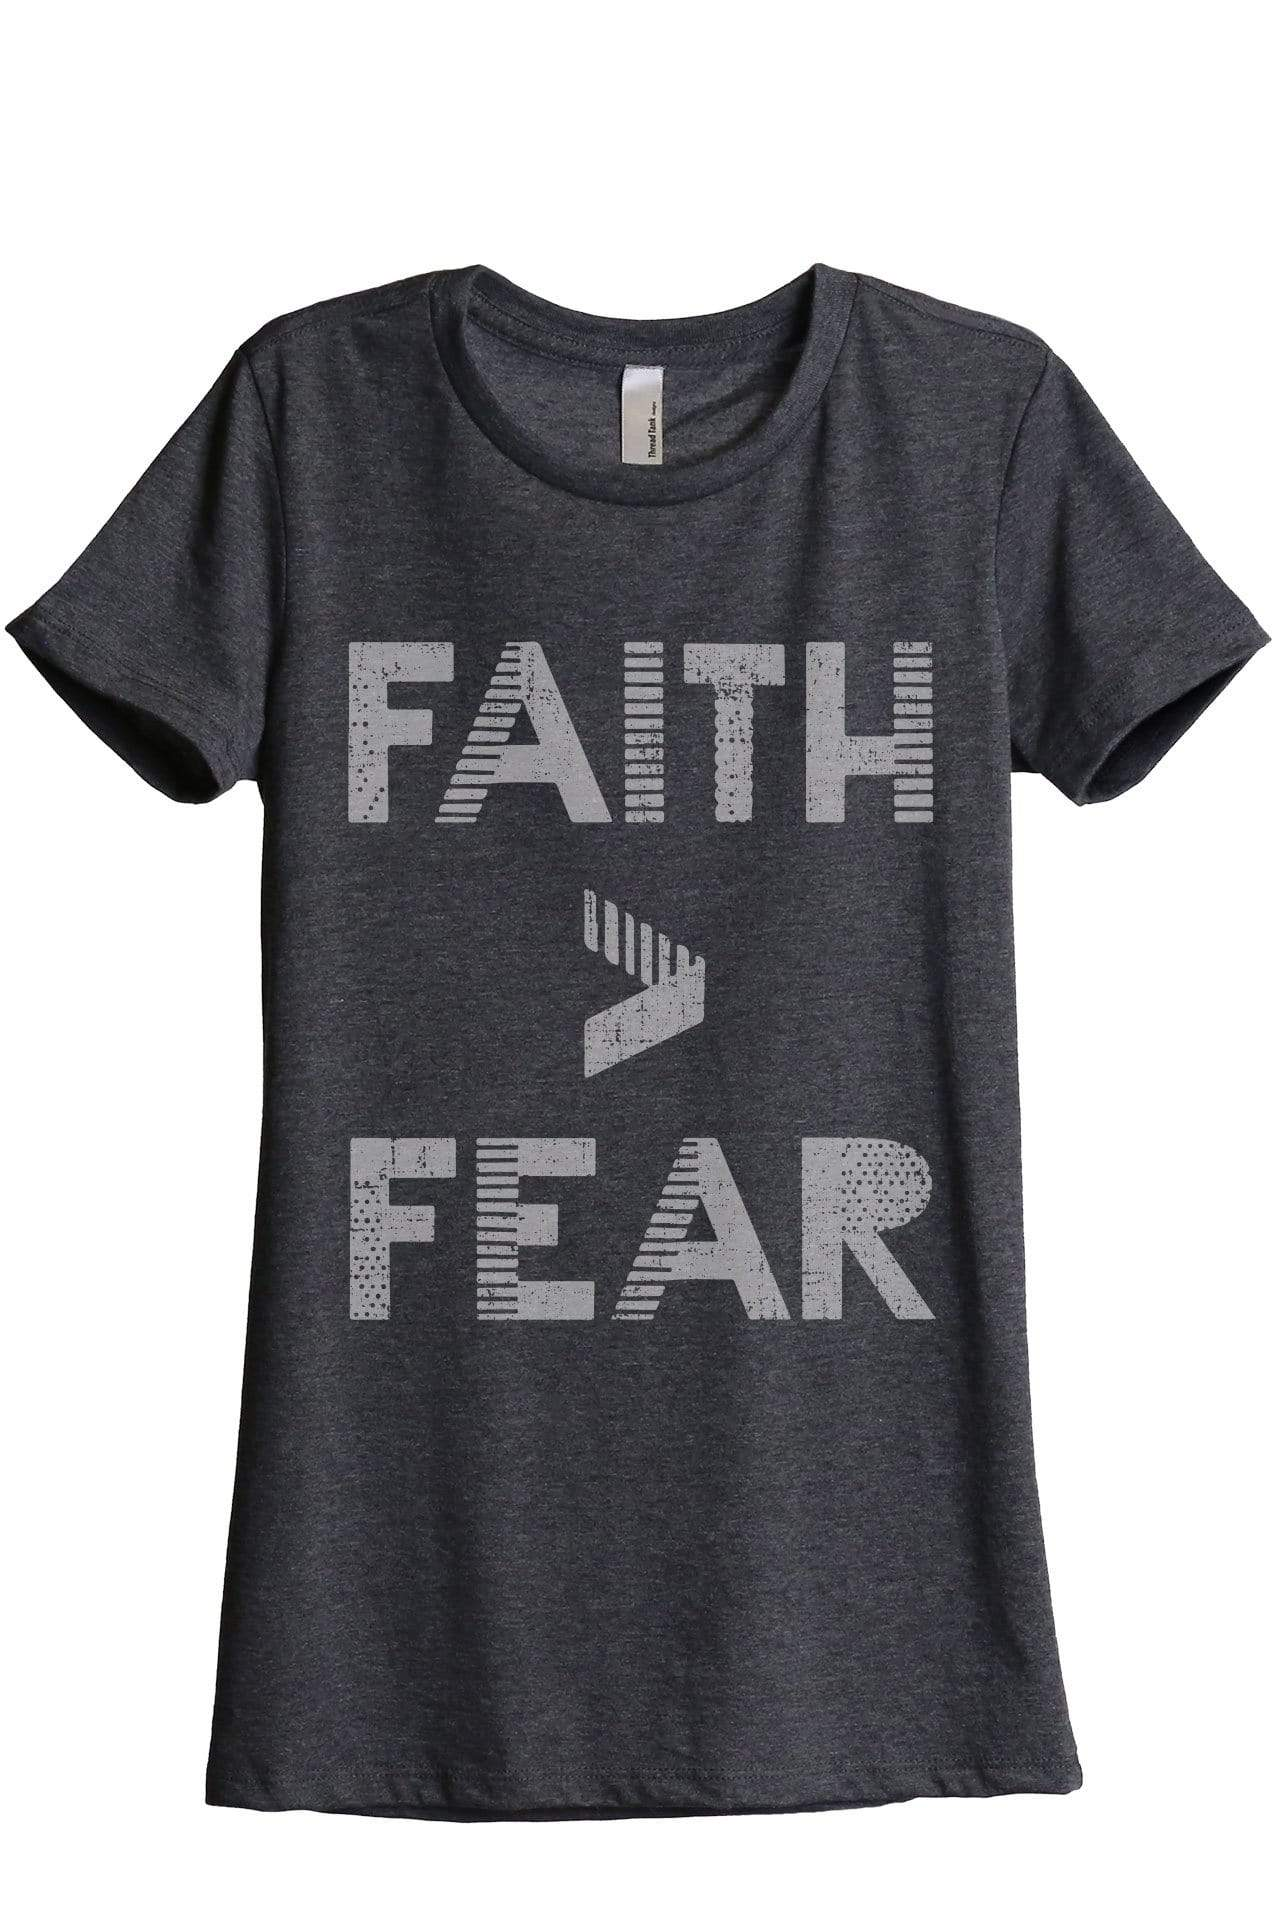 Faith Greater Than Fear - Thread Tank | Stories You Can Wear | T-Shirts, Tank Tops and Sweatshirts